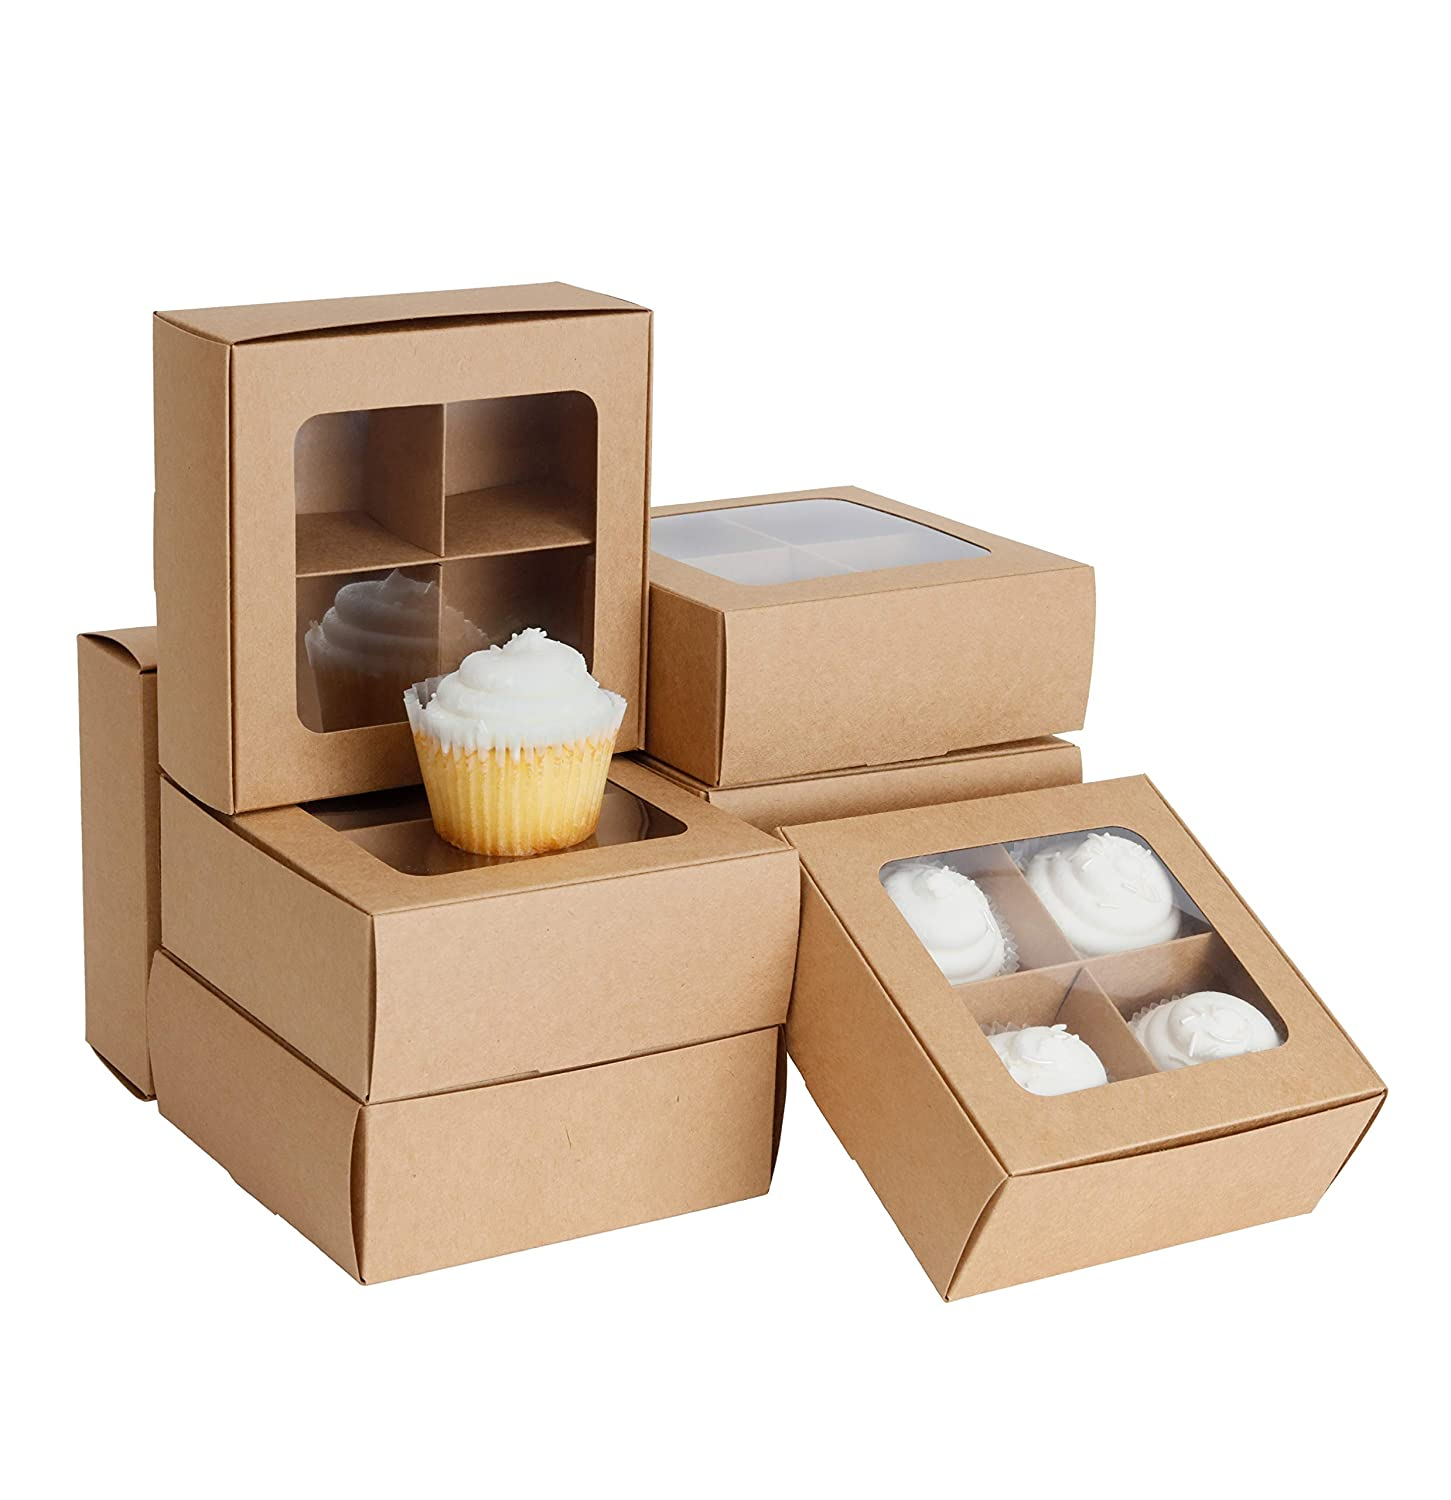 Gretel Medium Brown Bakery Boxes with Window and Dividers   6x6x2.4 in   Four Compartment Treat Boxes for Low Profile Cupcakes, Small Cookies, and Baked Goods for Gift Giving   24 Pack (Kraft)